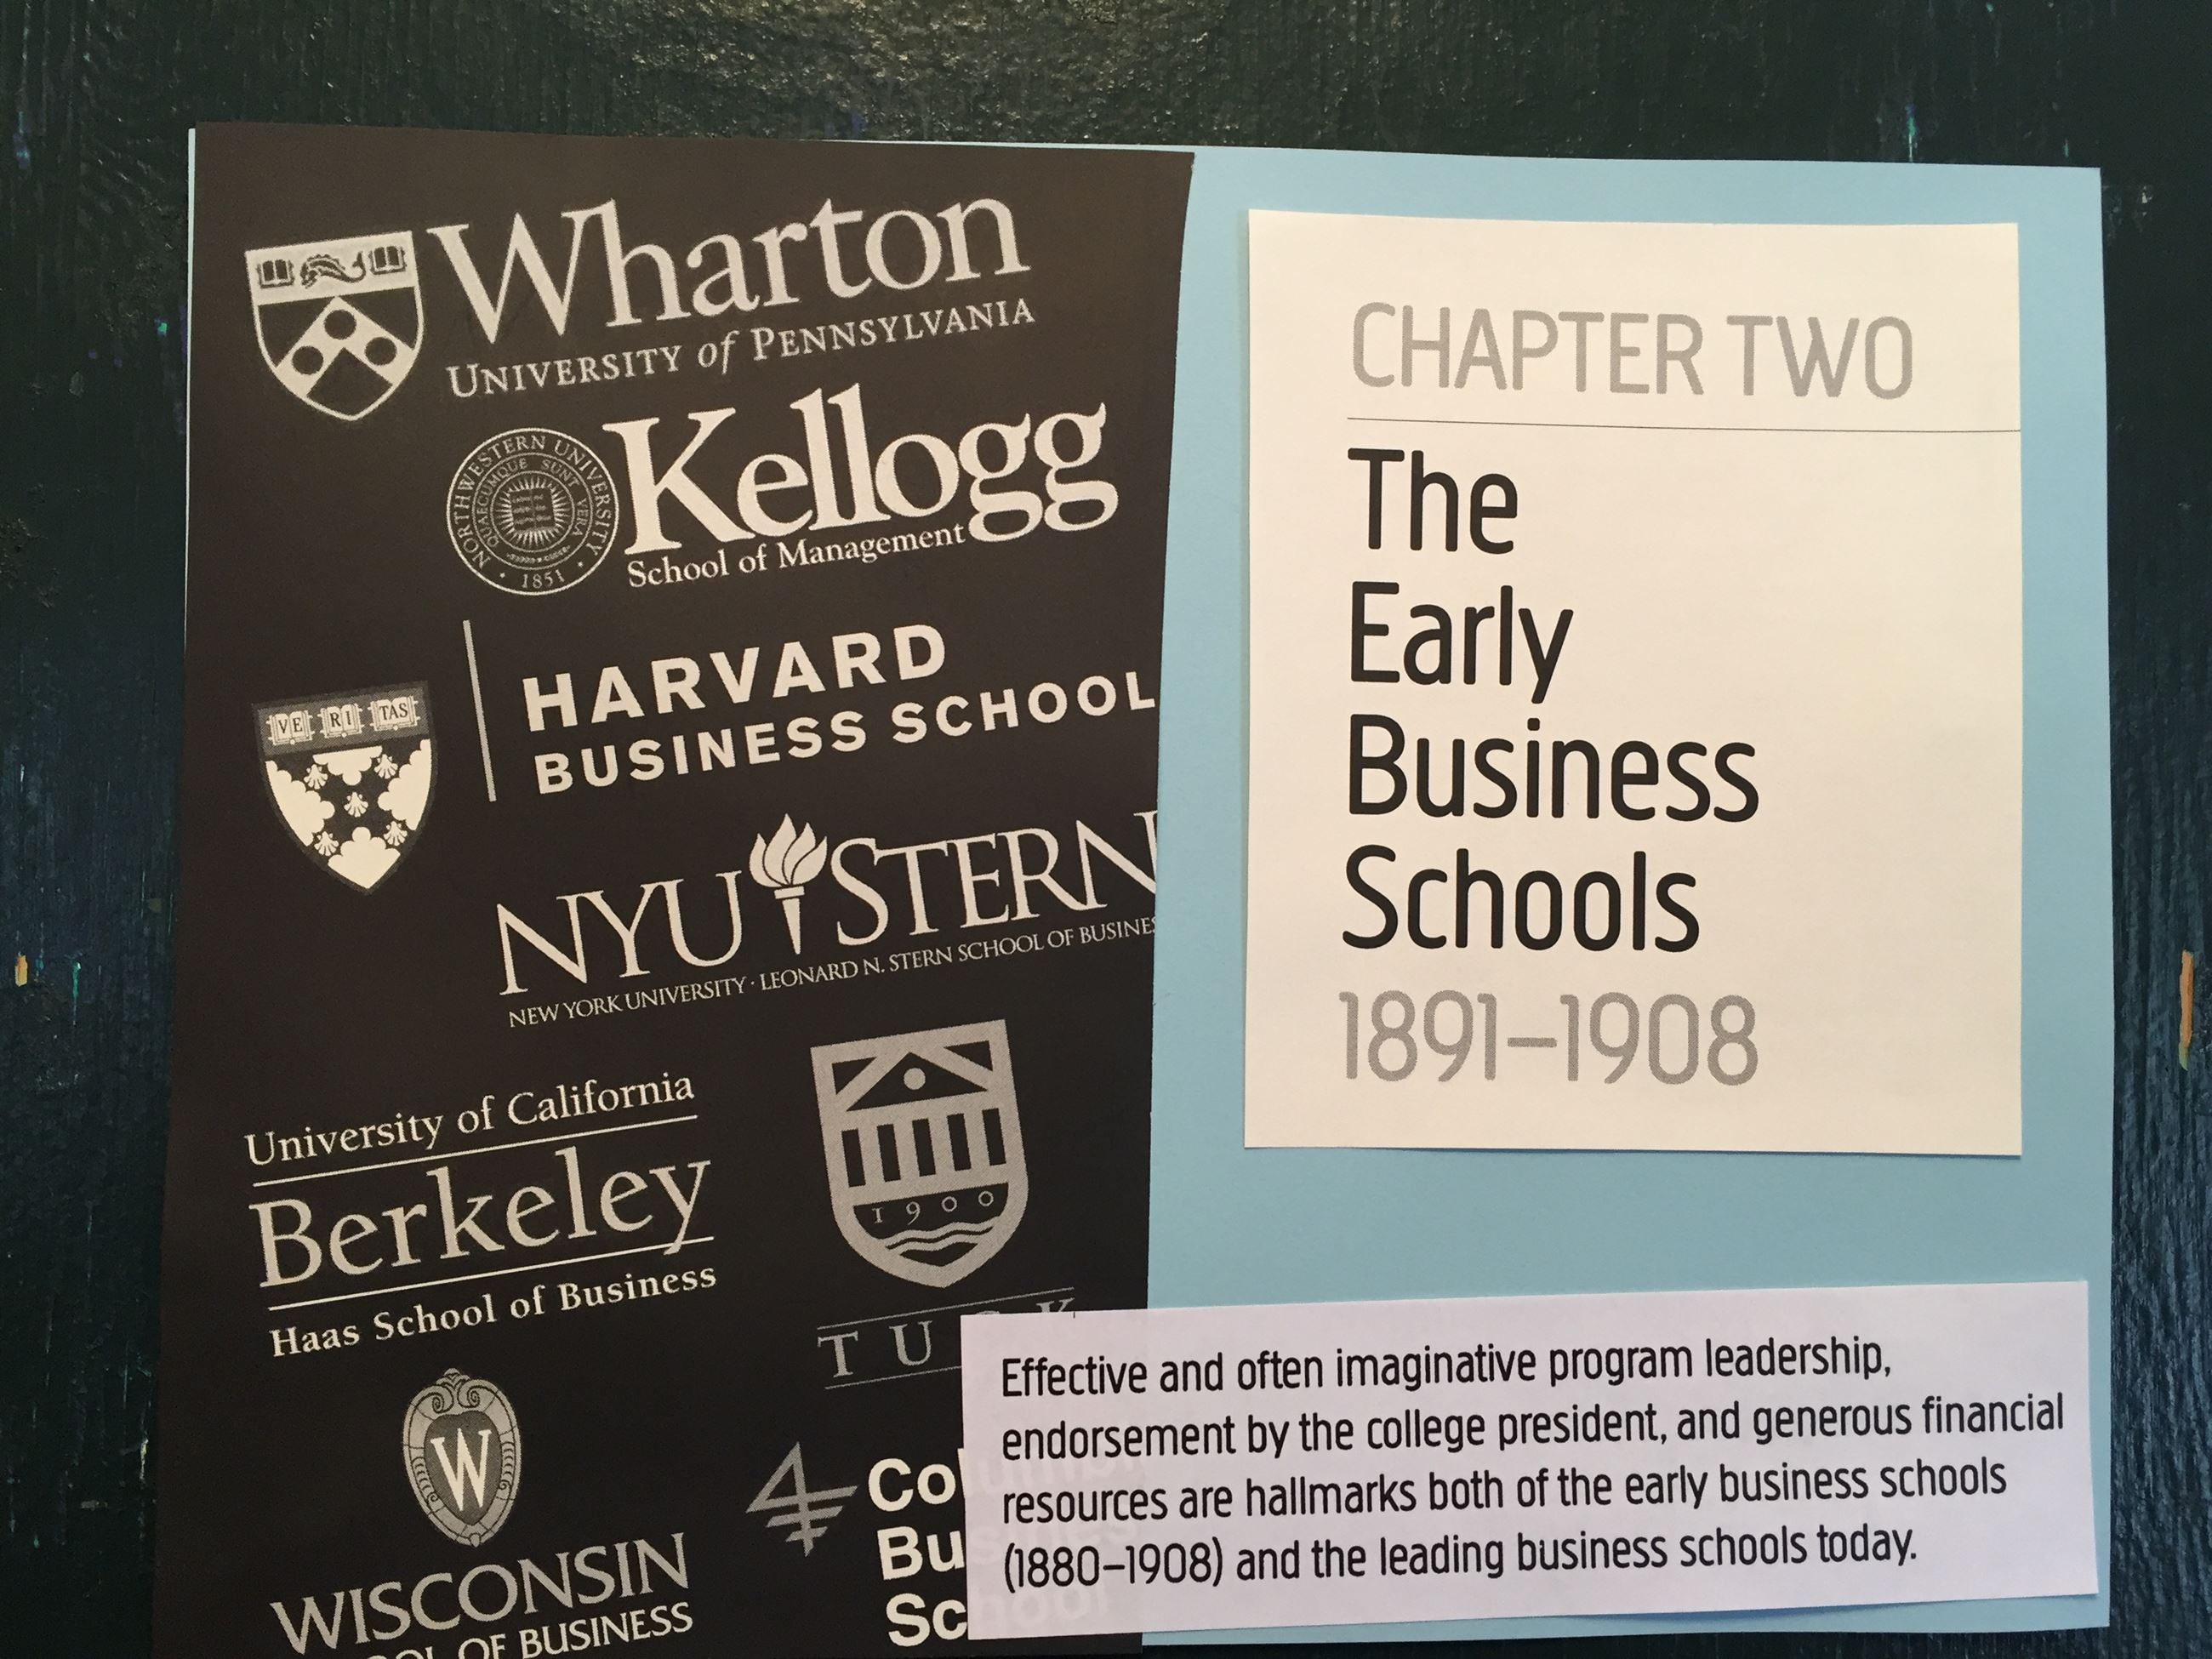 The Early Business Schools